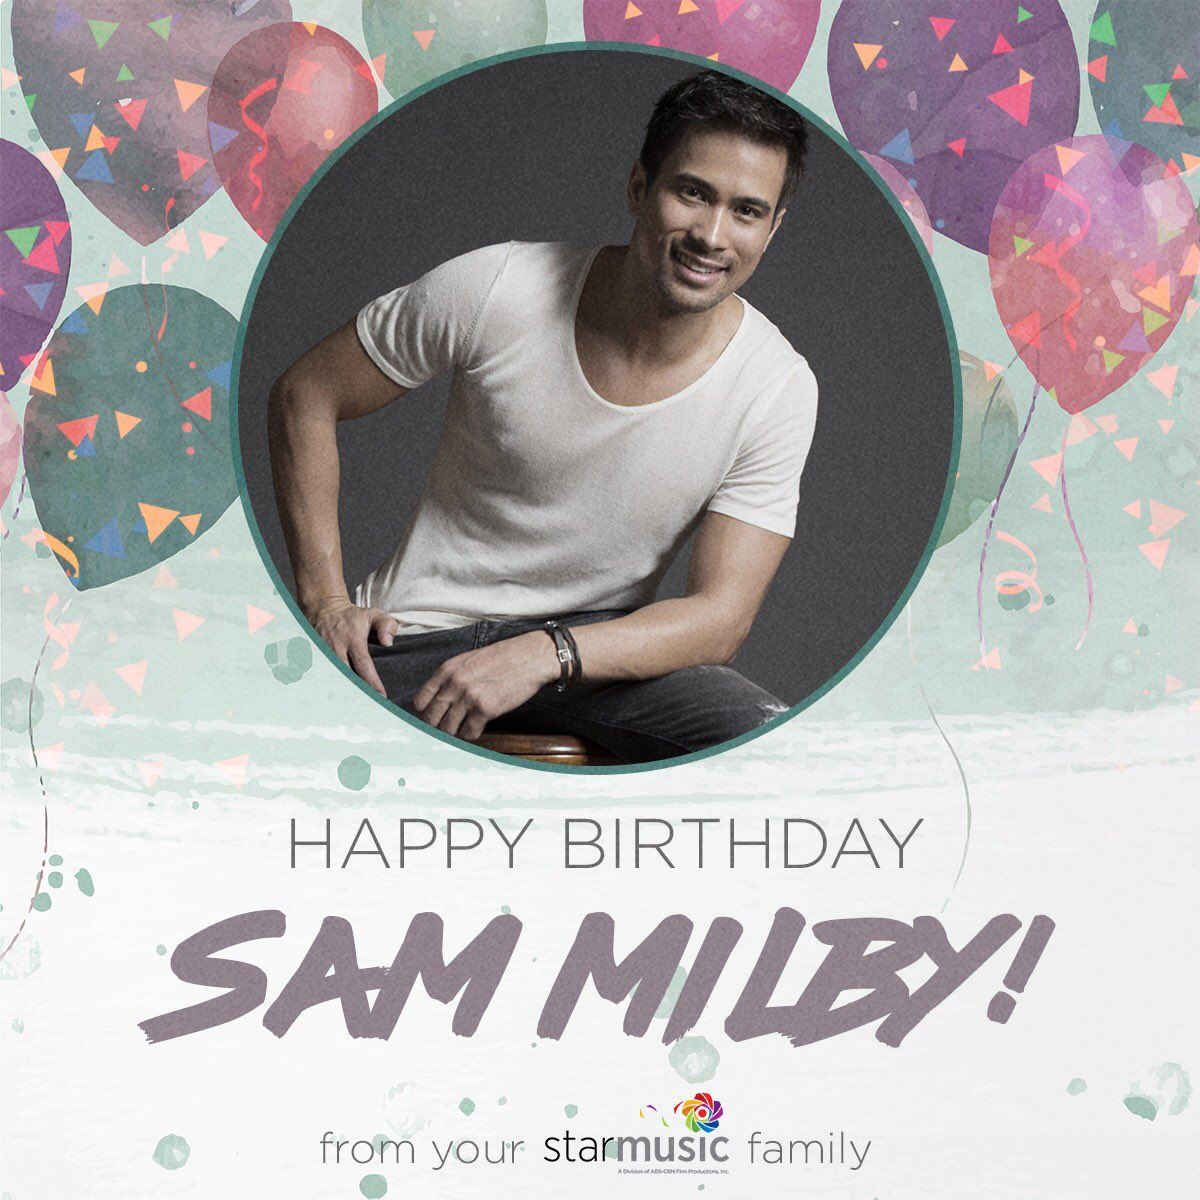 Happy birthday Sam Milby!! Love, your Star Music family!